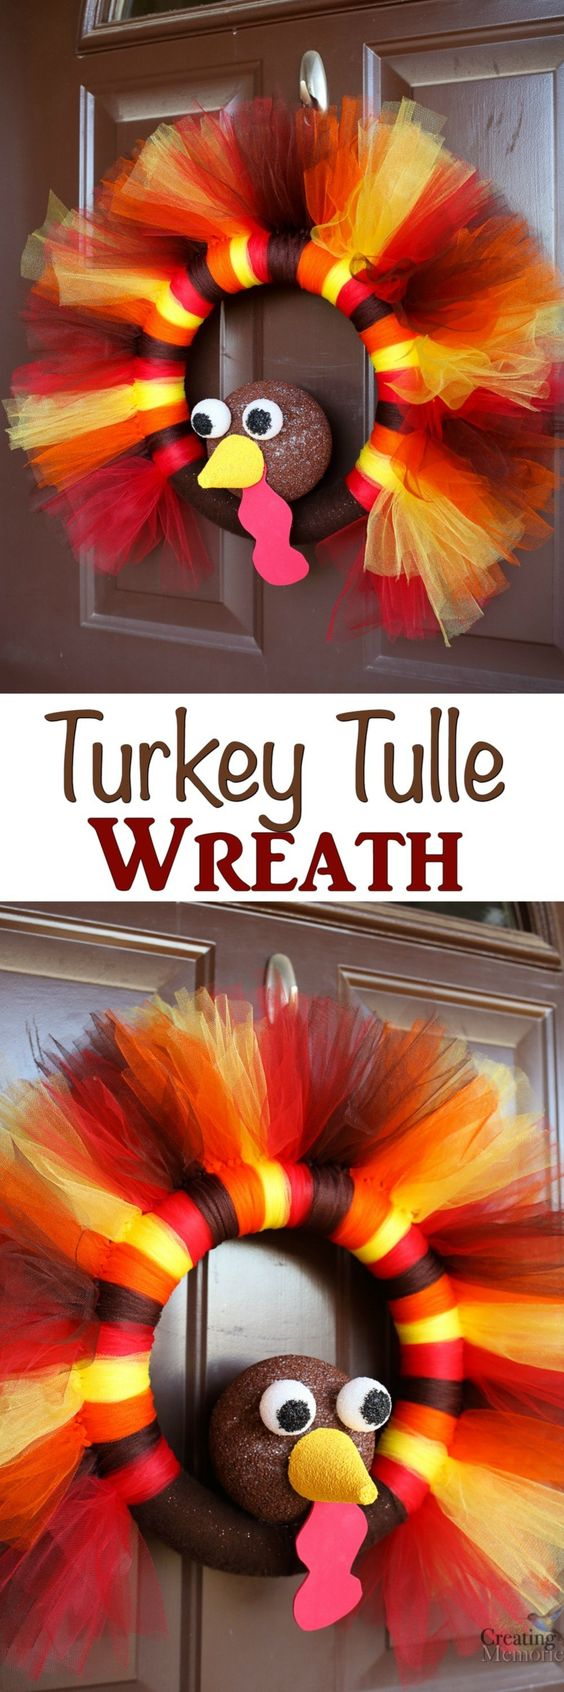 DIY Thanksgiving Turkey Tulle Wreath.